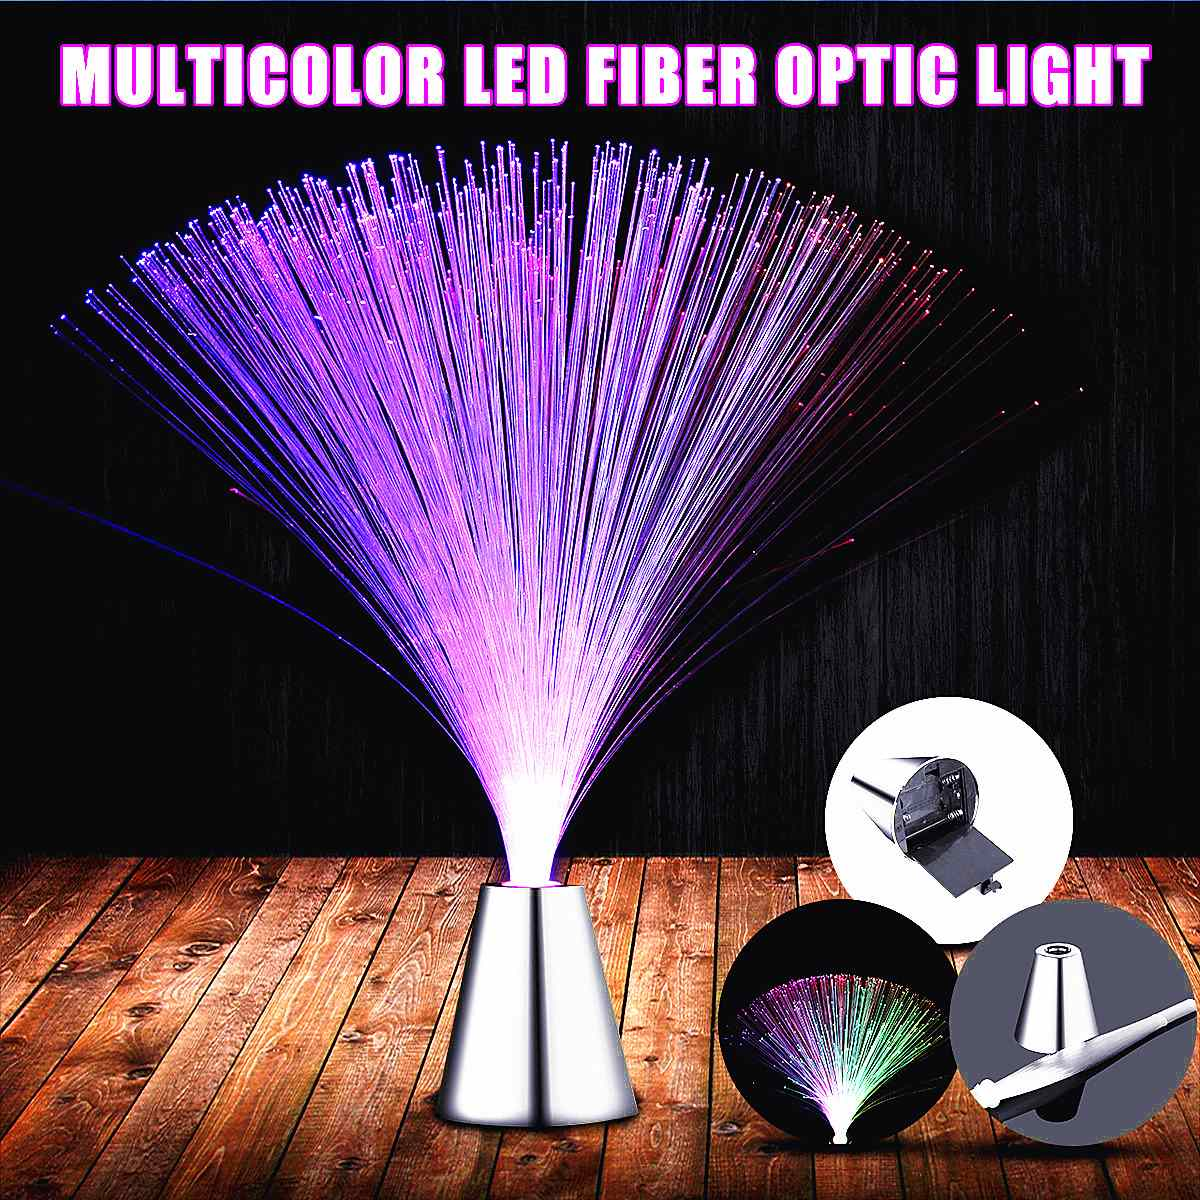 Claite Multicolor LED Optic Fiber Light Stand Night Light Lamp For Interior Decoration Centerpiece Children Holiday Wedding Gift 1pc rgbw multicolor led light base for vases rechargeable wedding party centerpiece light plate christmas under furniture lights